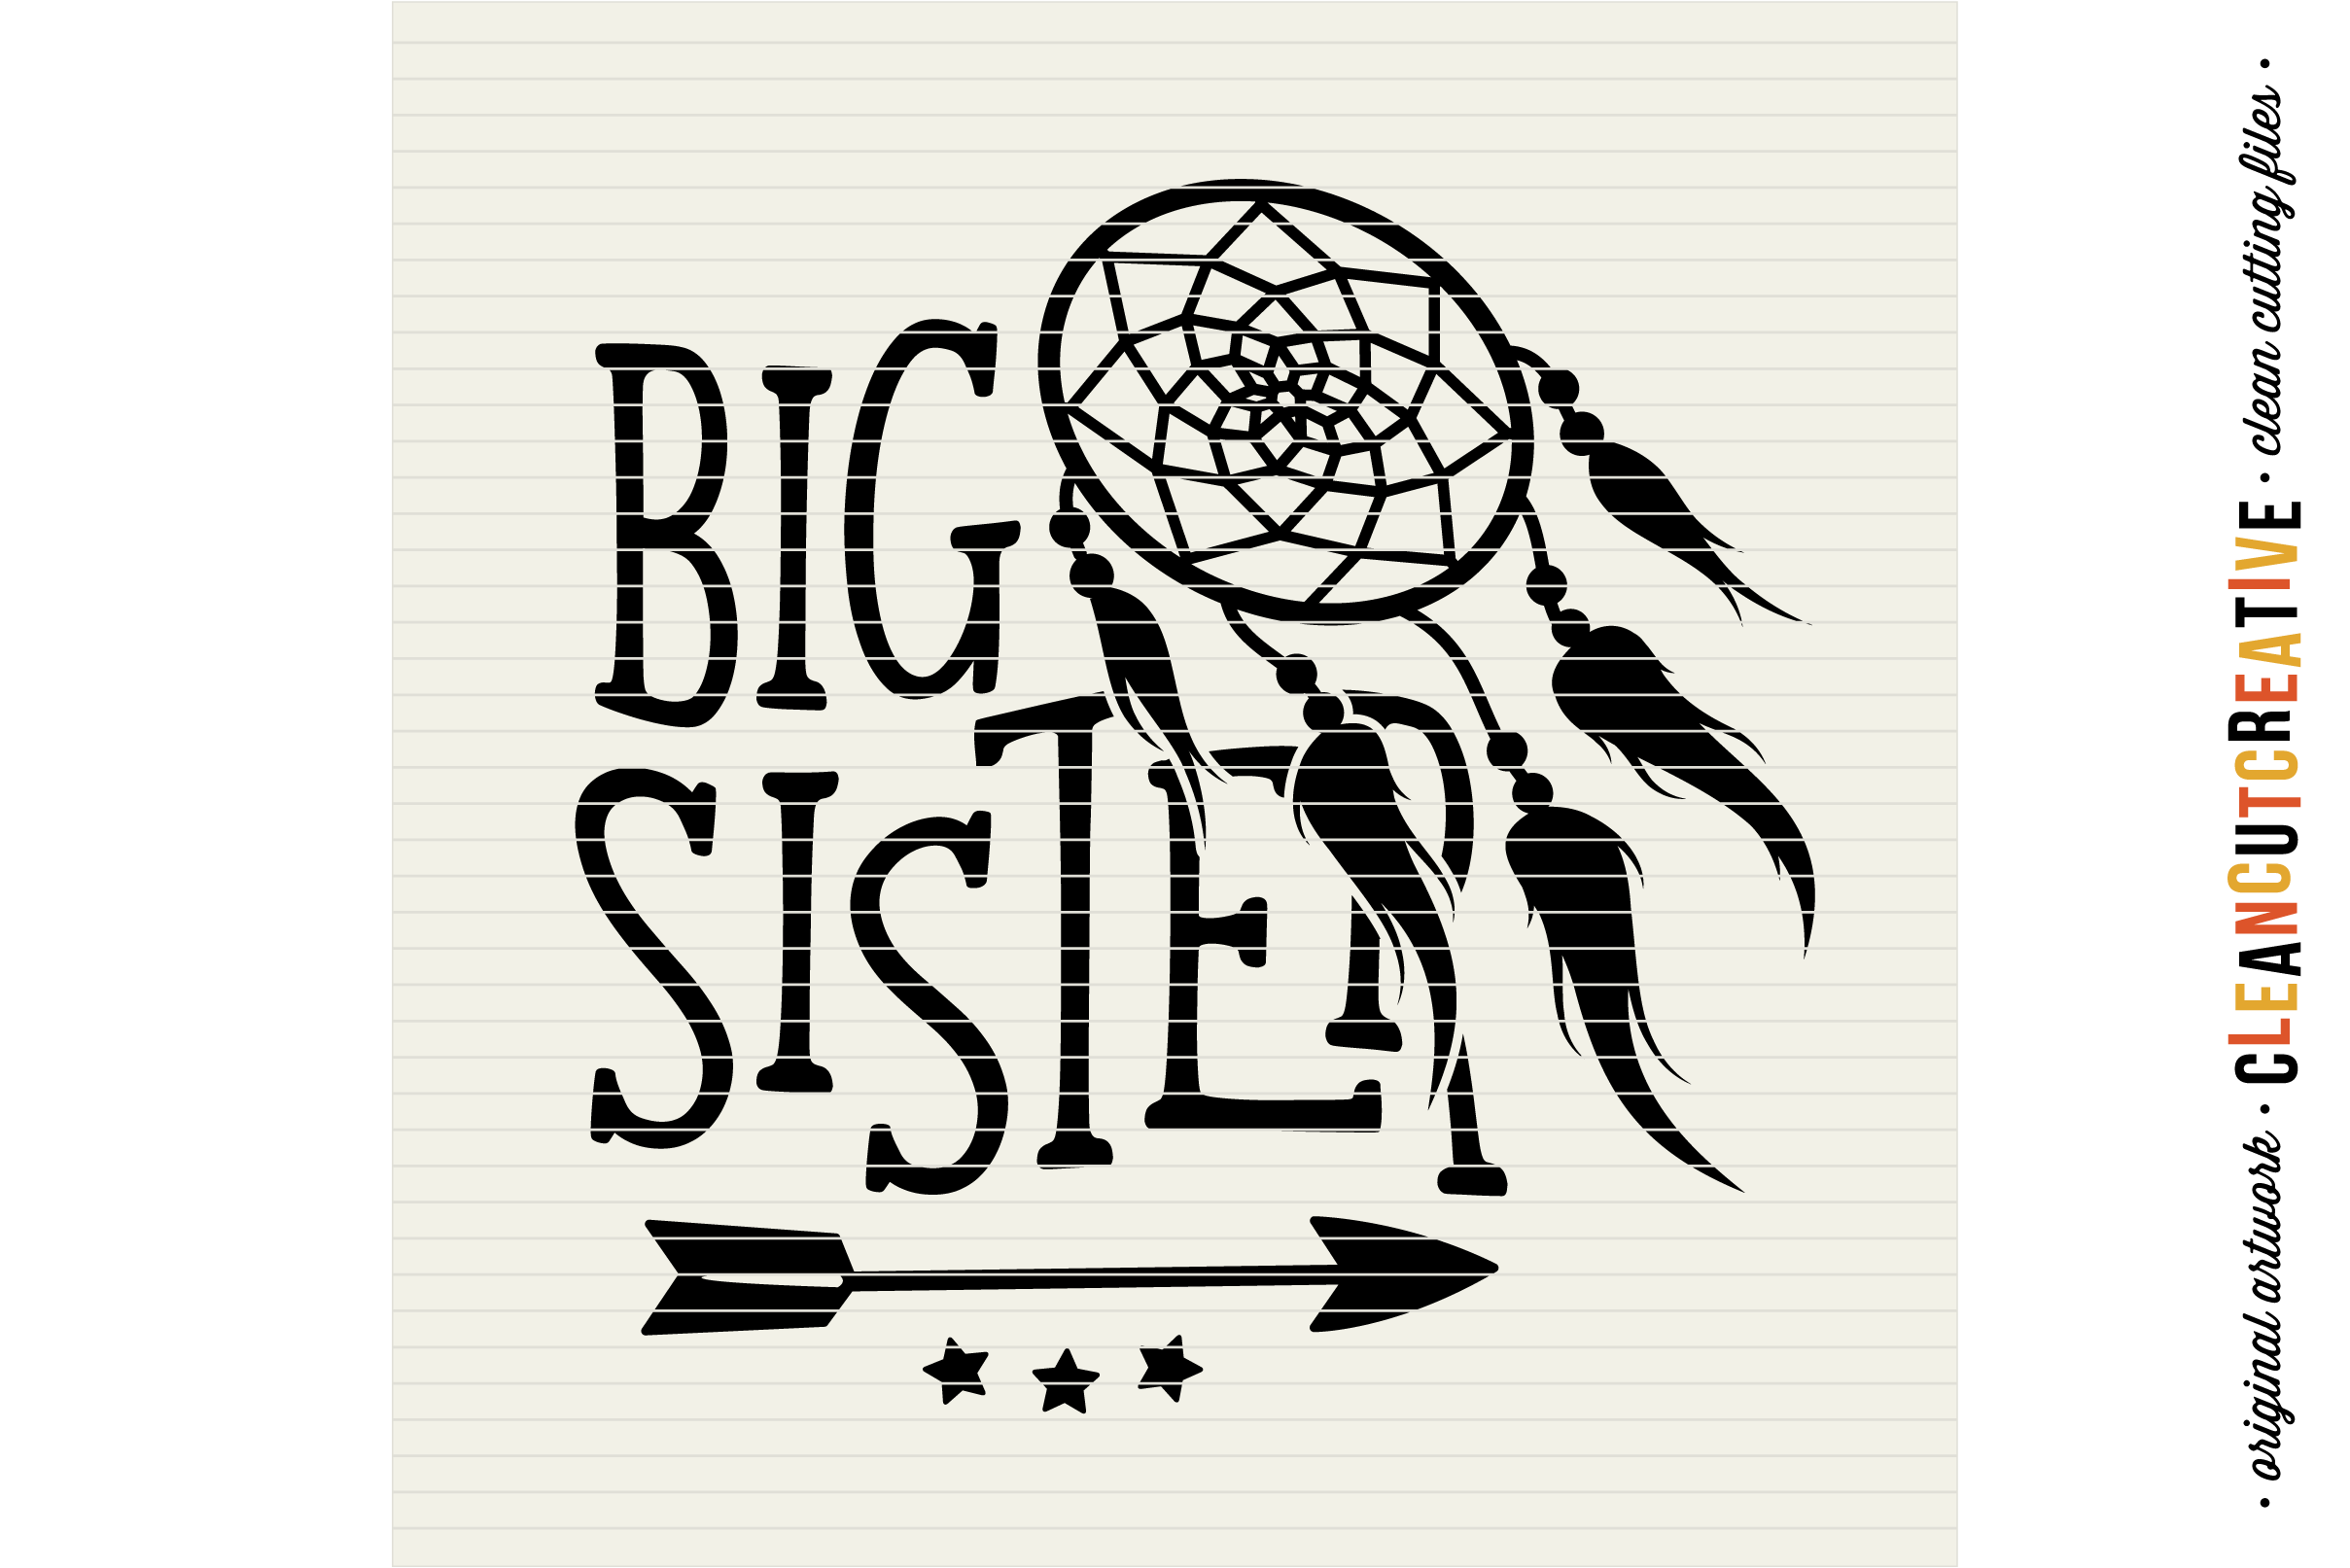 BIG SISTER cutfile design withdreamcatcher and feathers - SVG DXF EPS PNG - clean cutting files example image 3